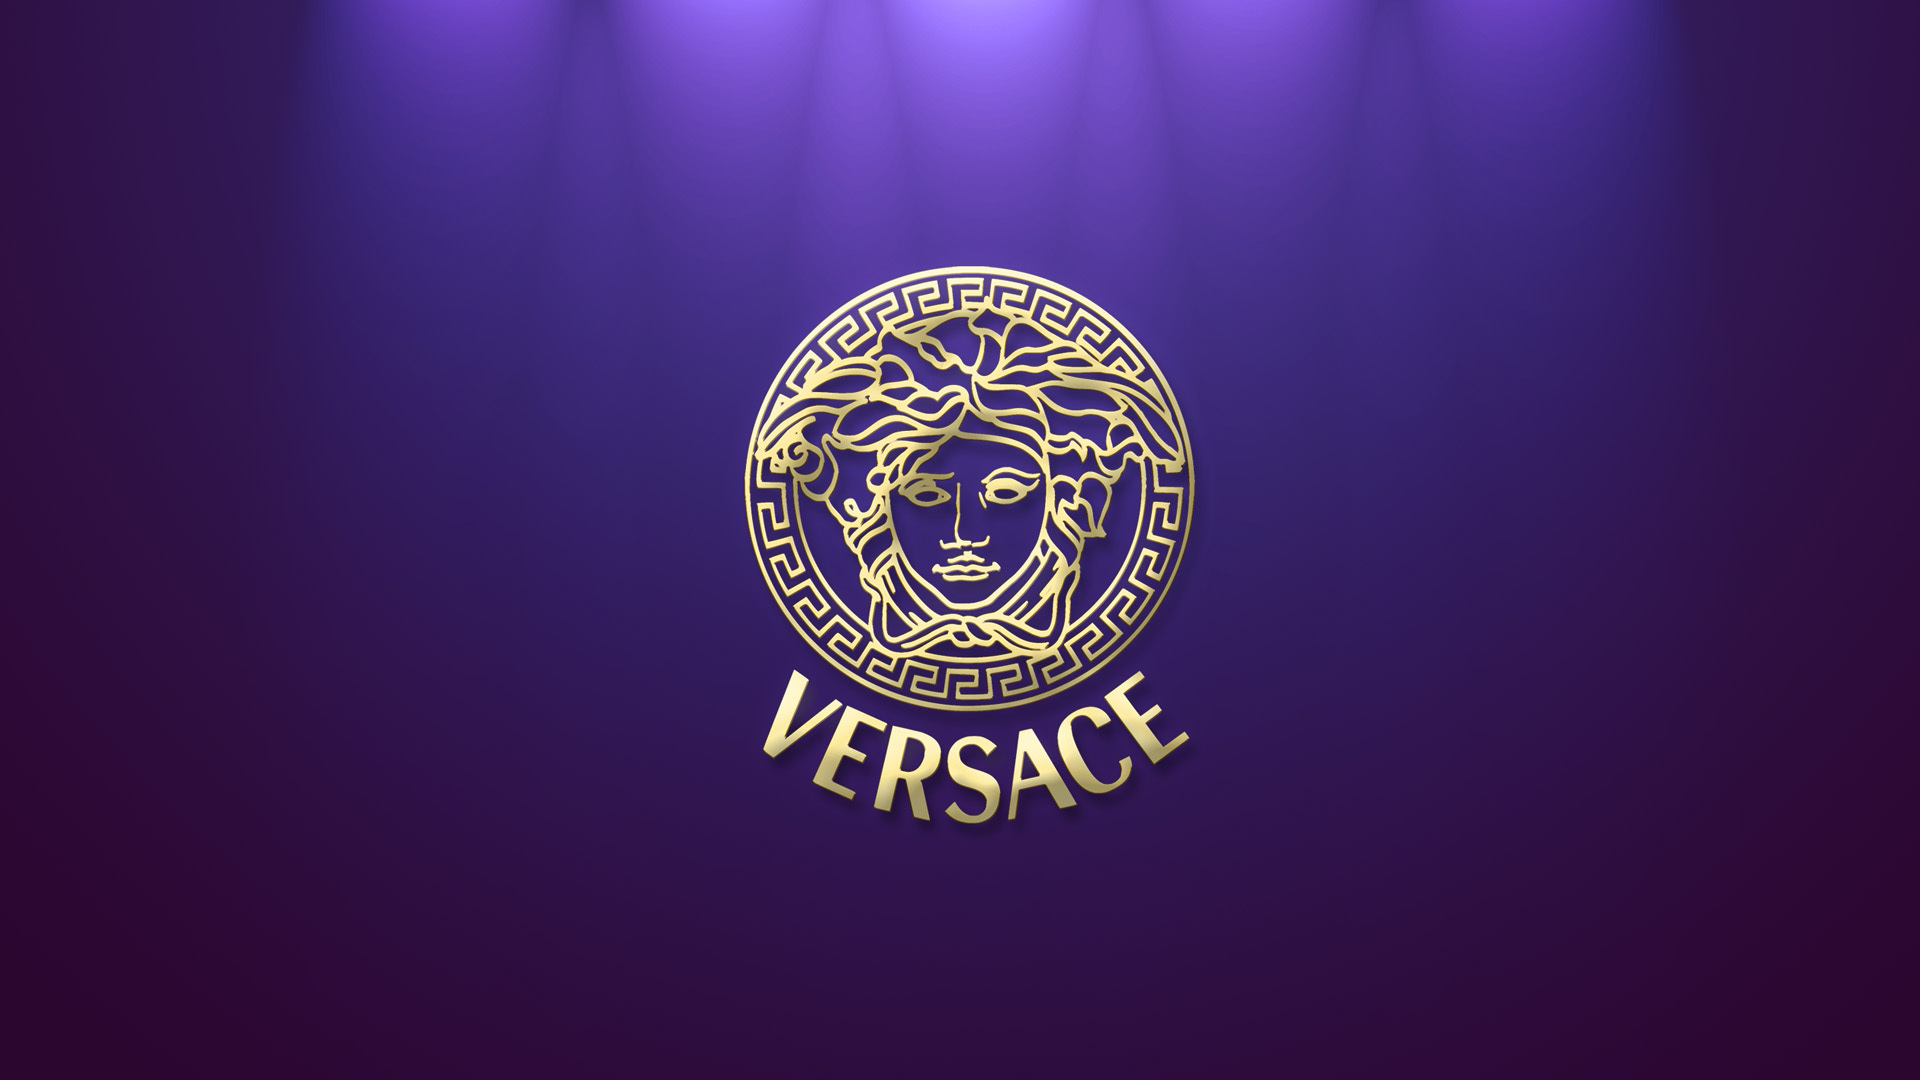 Versace Wallpapers Images Photos Pictures Backgrounds HD Wallpapers Download Free Images Wallpaper [1000image.com]